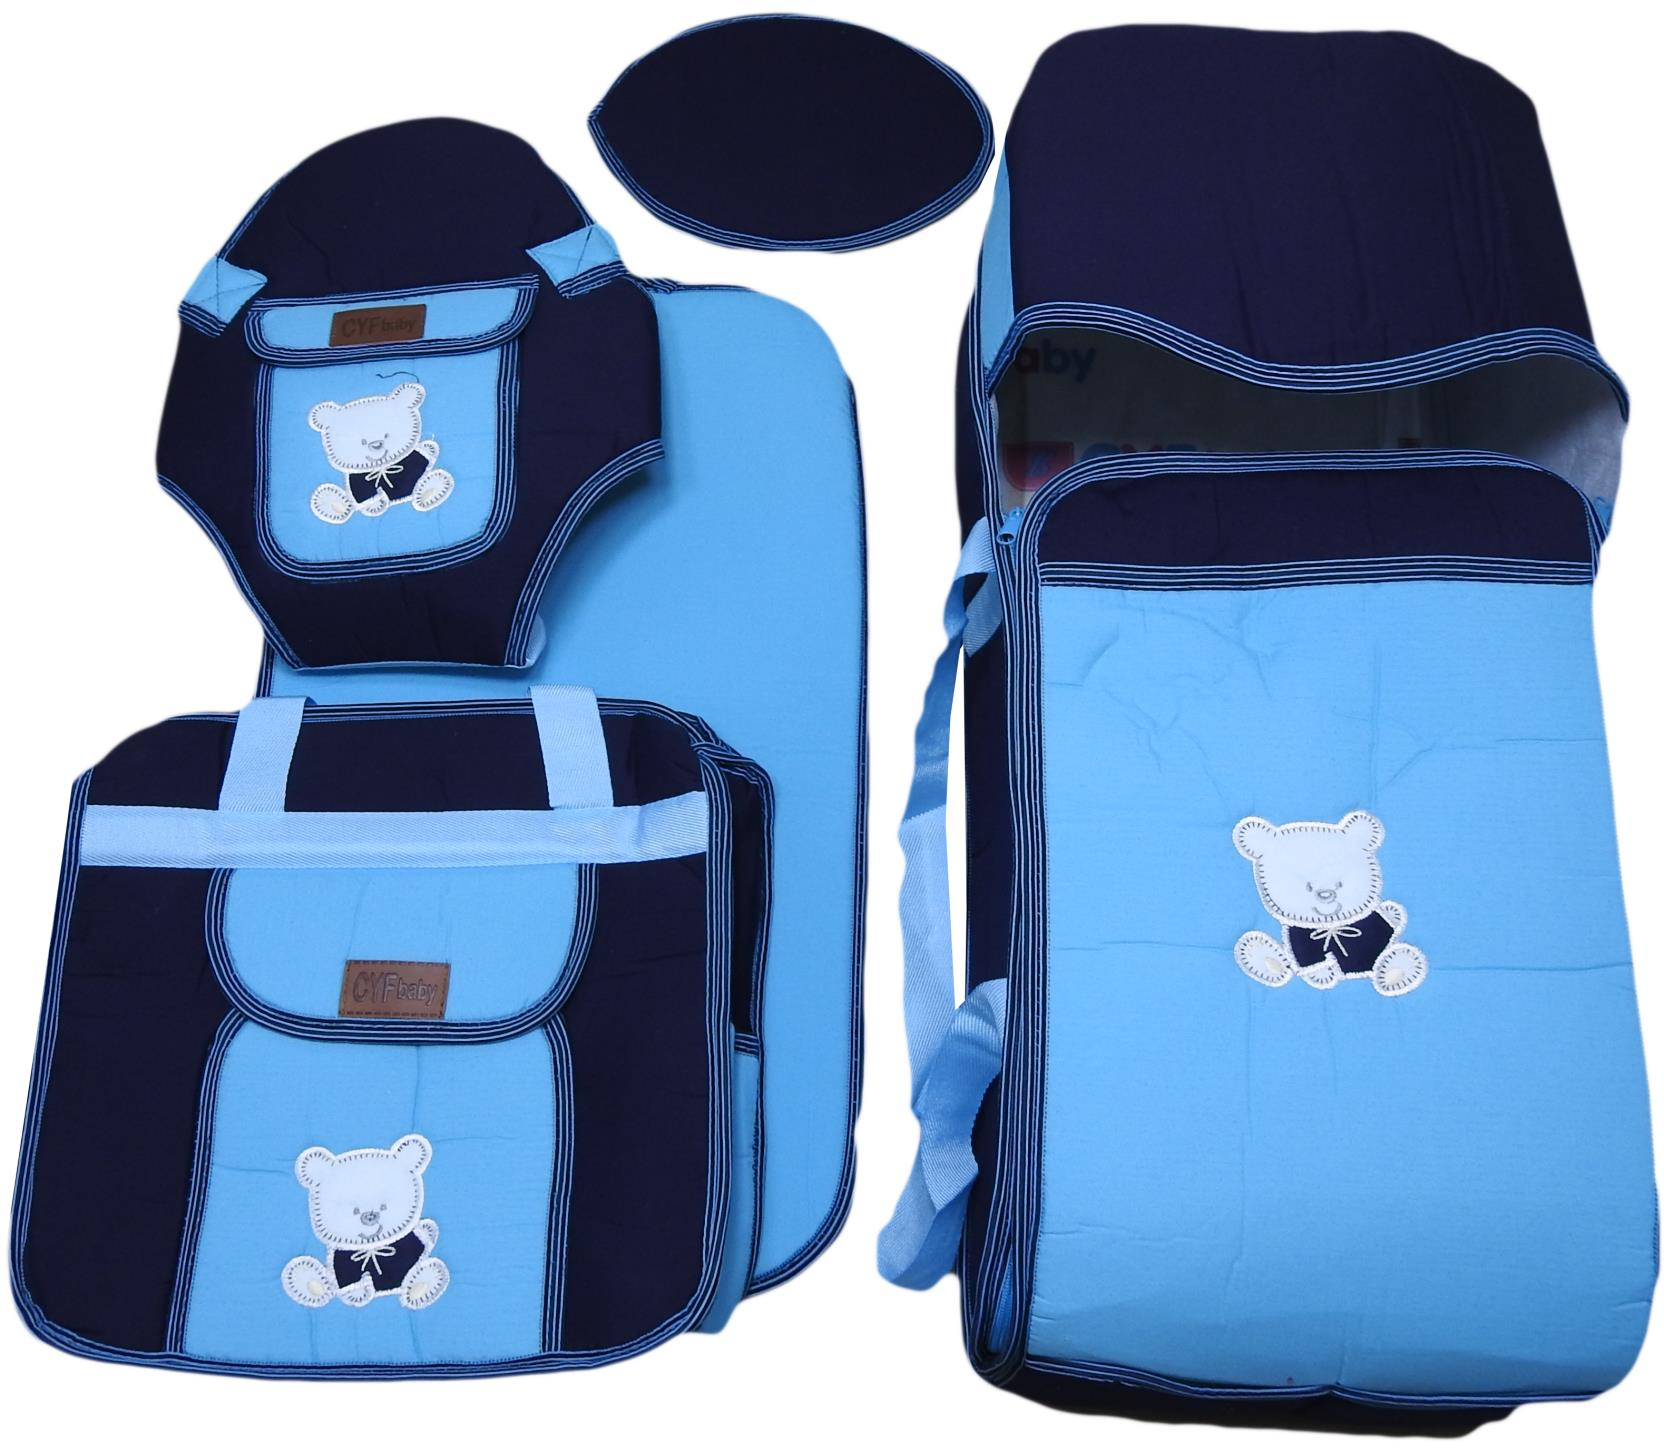 149 wholesale children set of 4 item, bag carrier for baby + diaper bag+baby carrier+pad